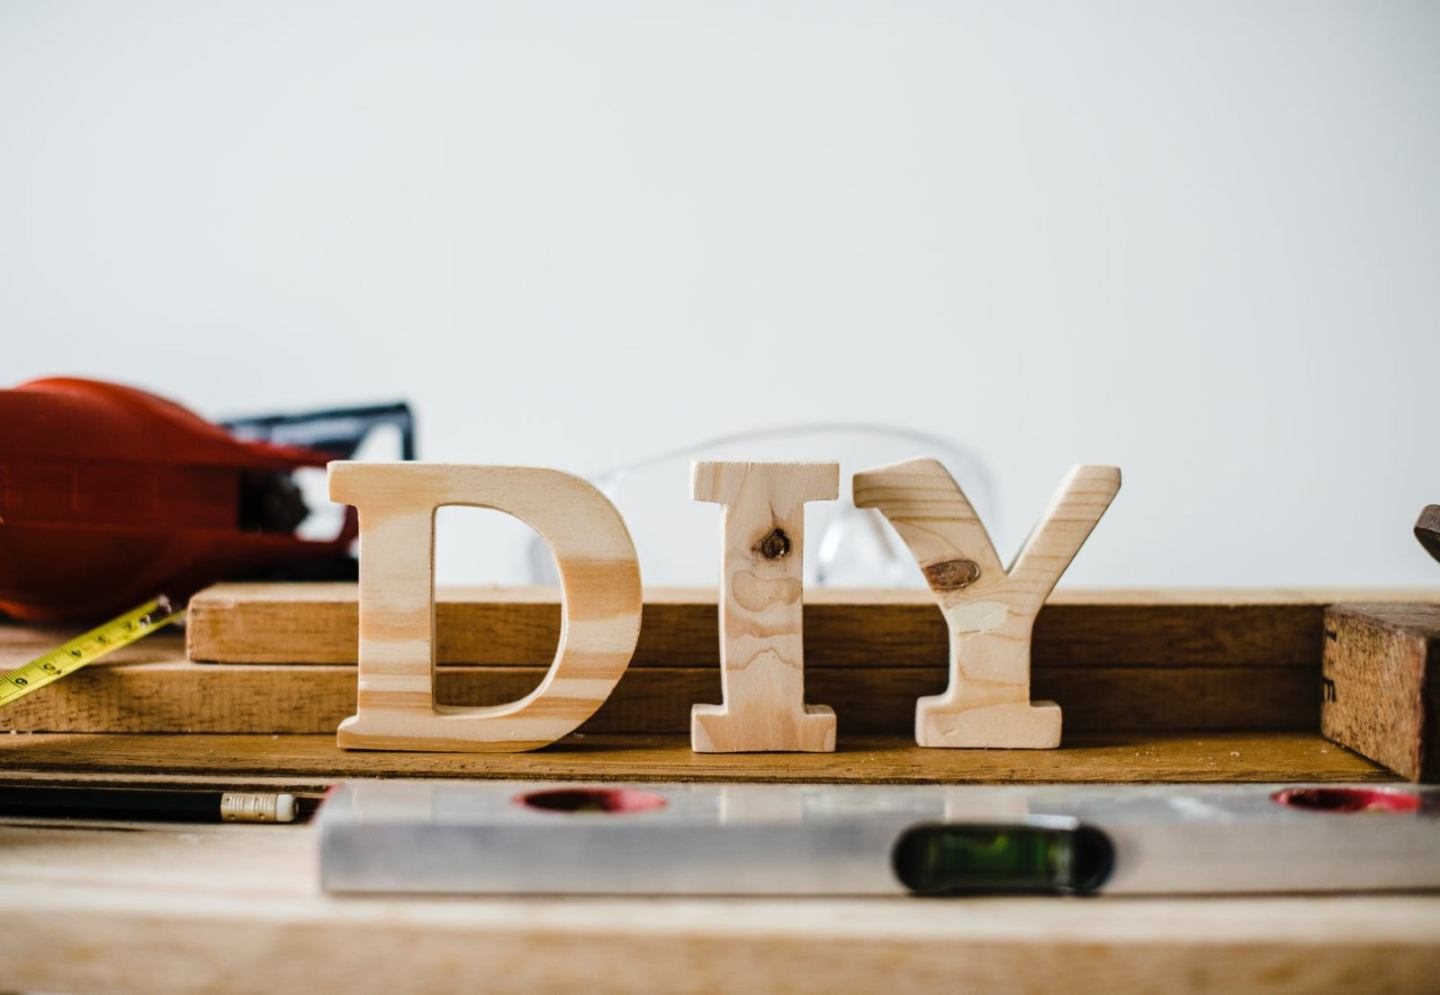 In the last few years, DIY has been linked to inducing a positive effect on people's mental wellbeing. It's for that reason that we are sharing ways to Improve DIY skills which in turn can improve your mental wellbeing.